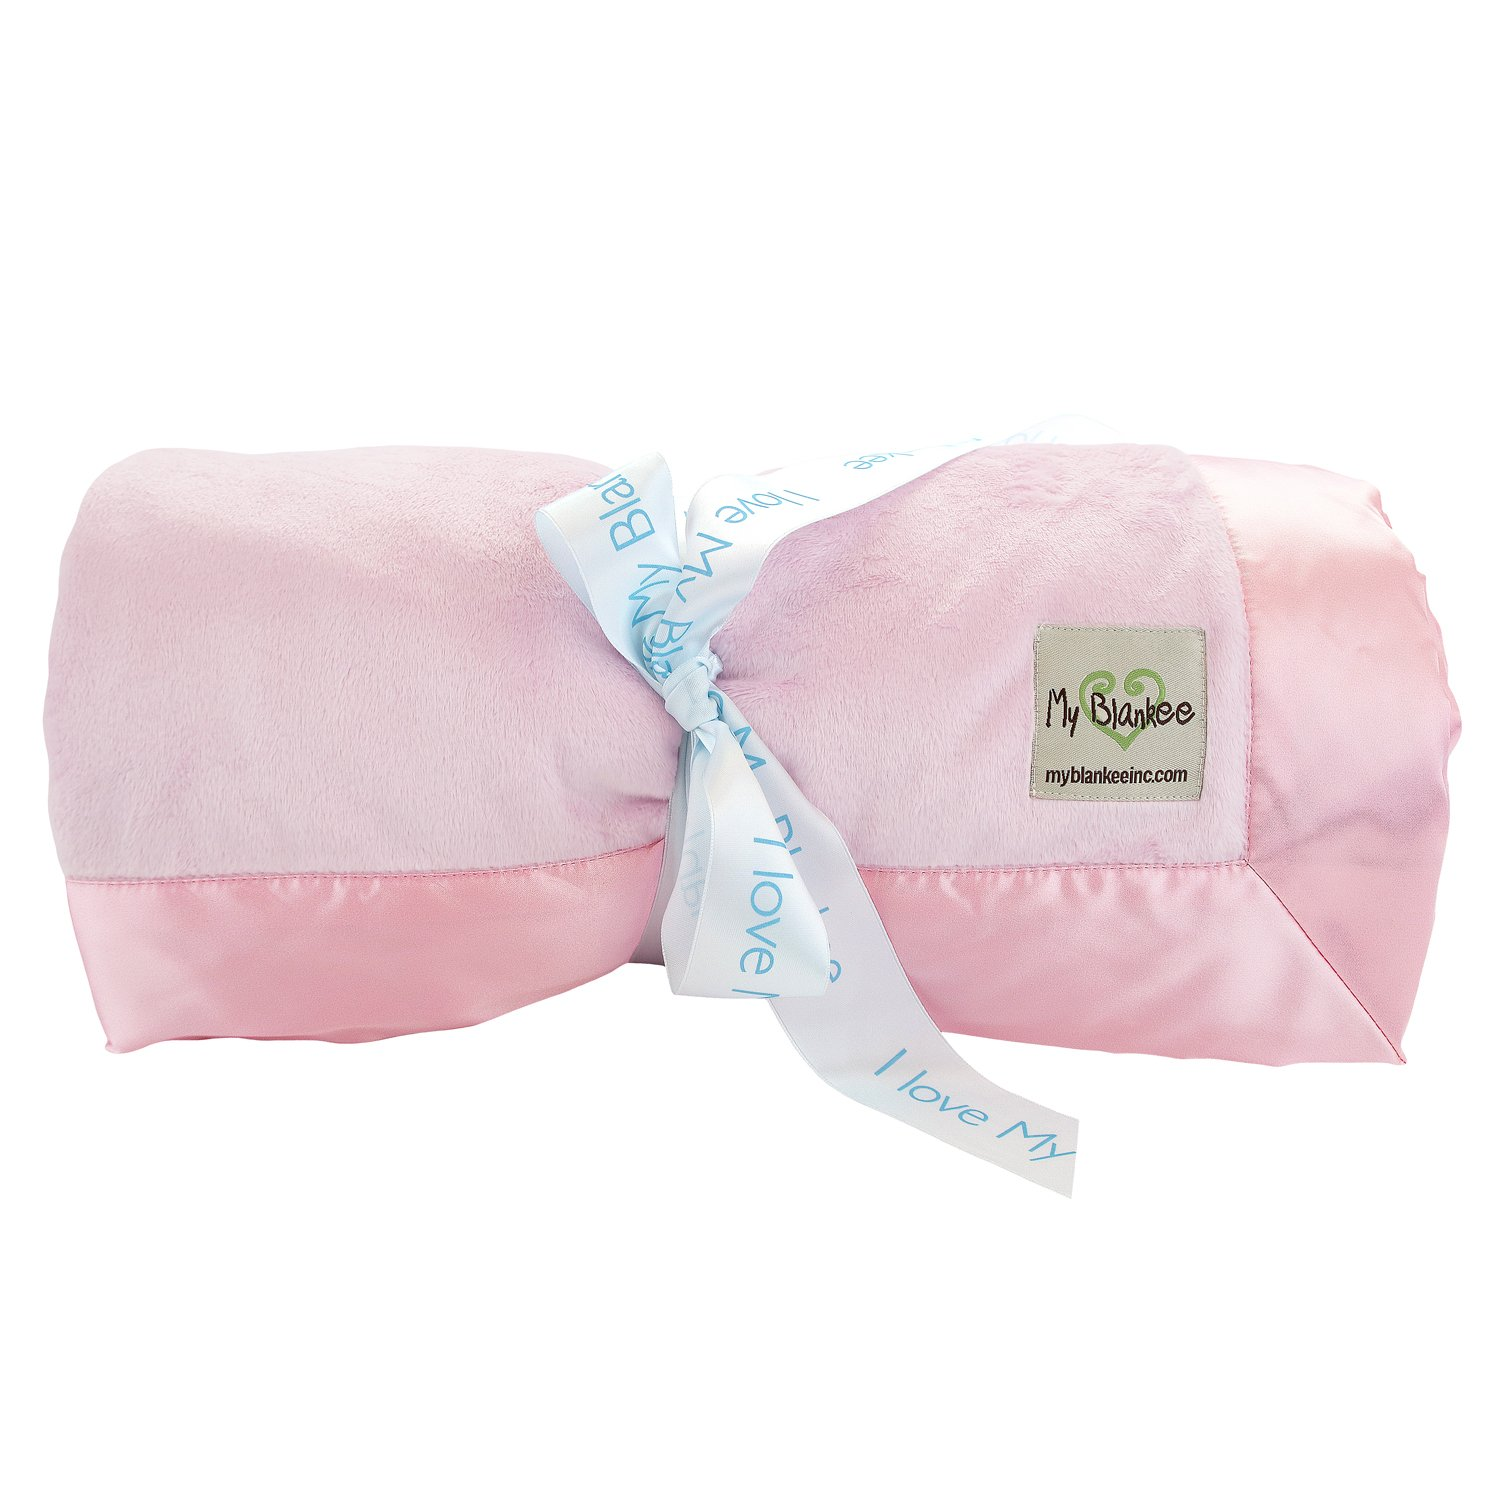 My Blankee Minky Solid Full Queen Blanket with Flat Satin Border, Pink, 90'' x 90''